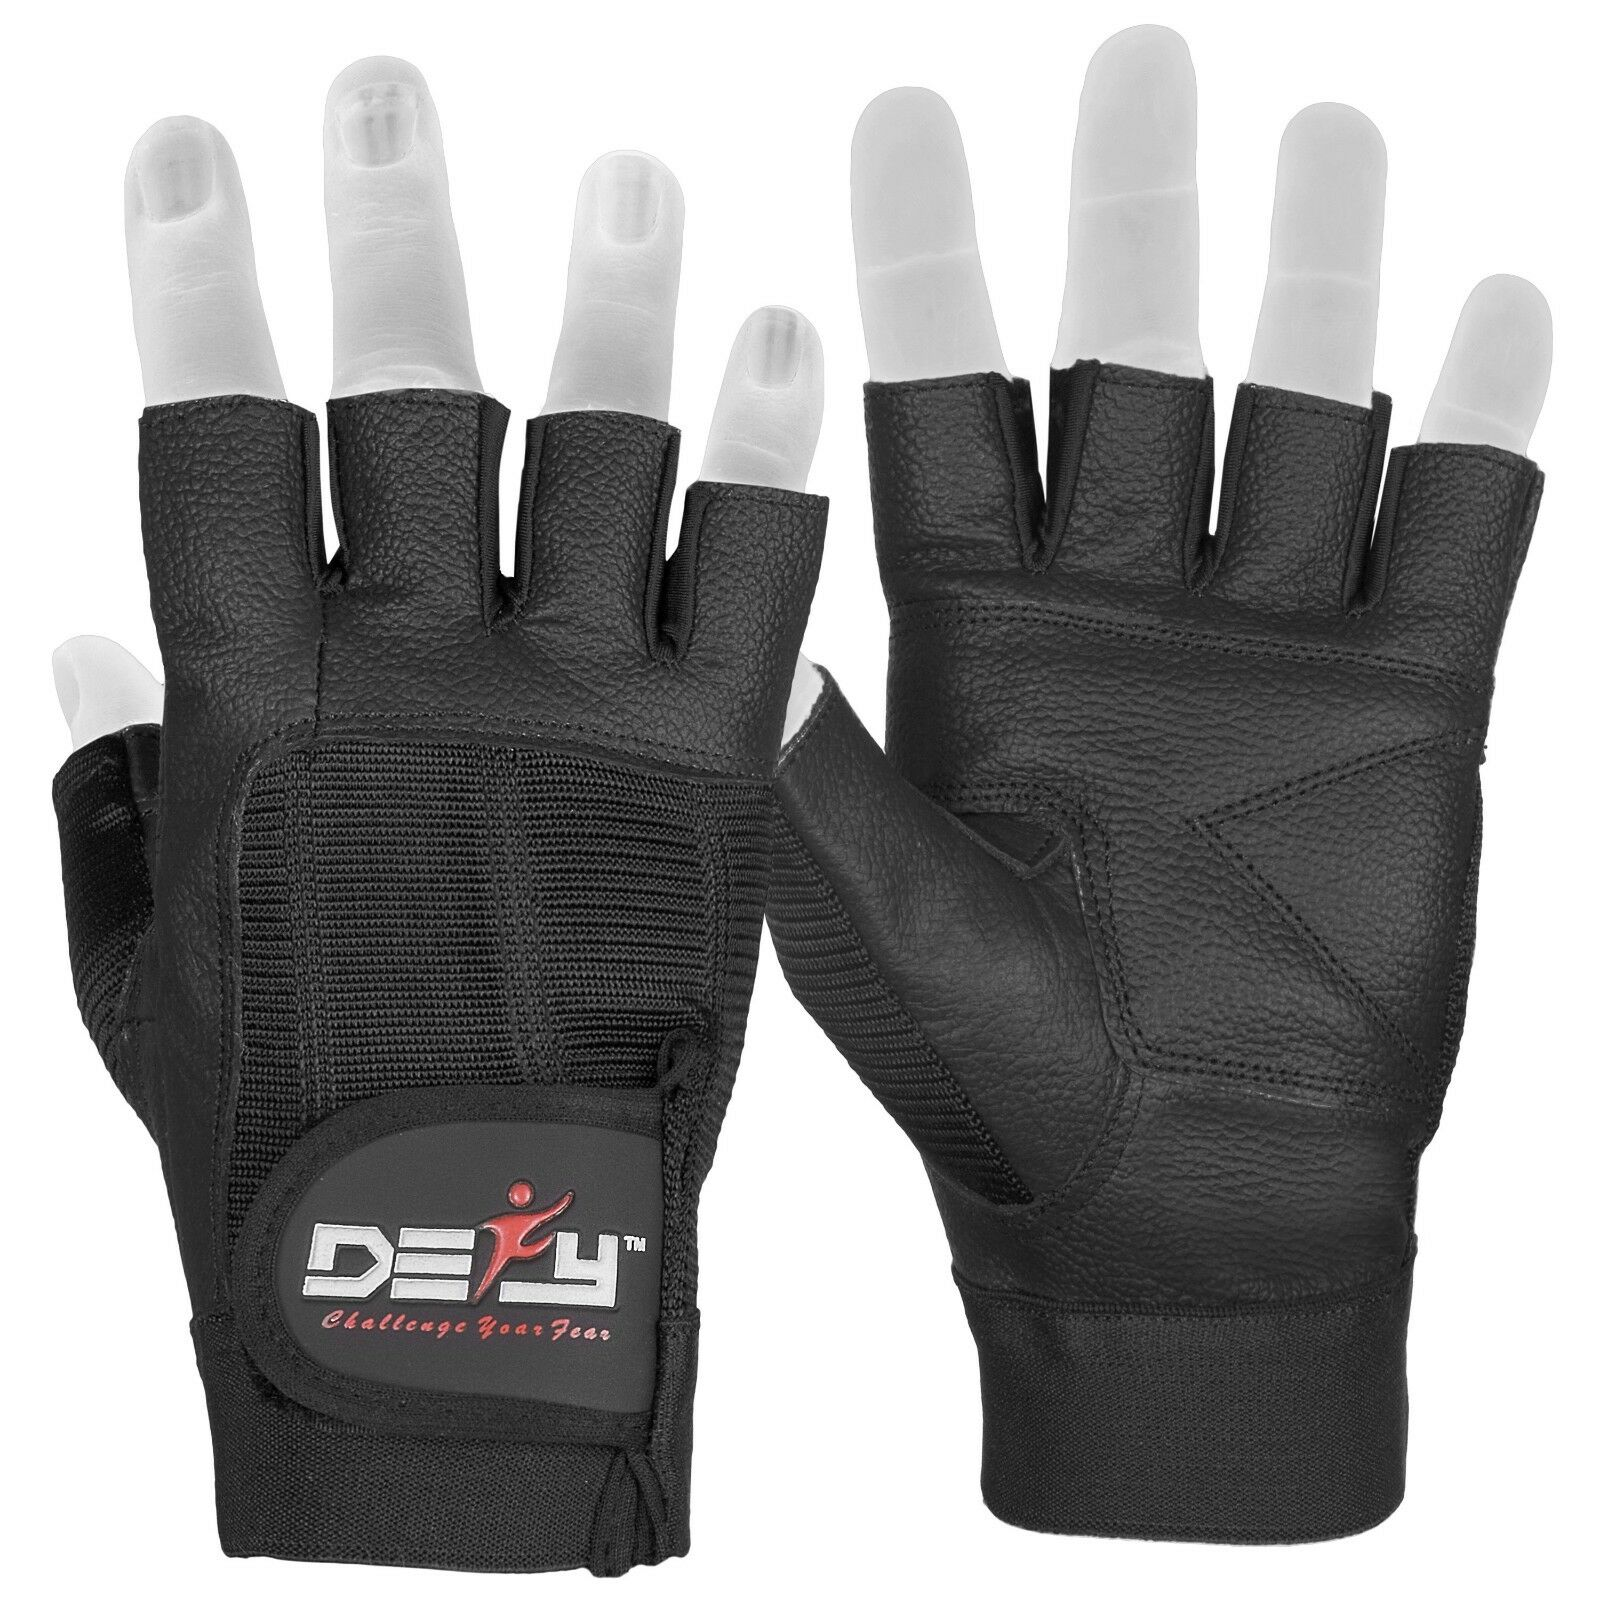 DEFY Real Leather Spandex Padded Gym Gloves Fitness Weightli